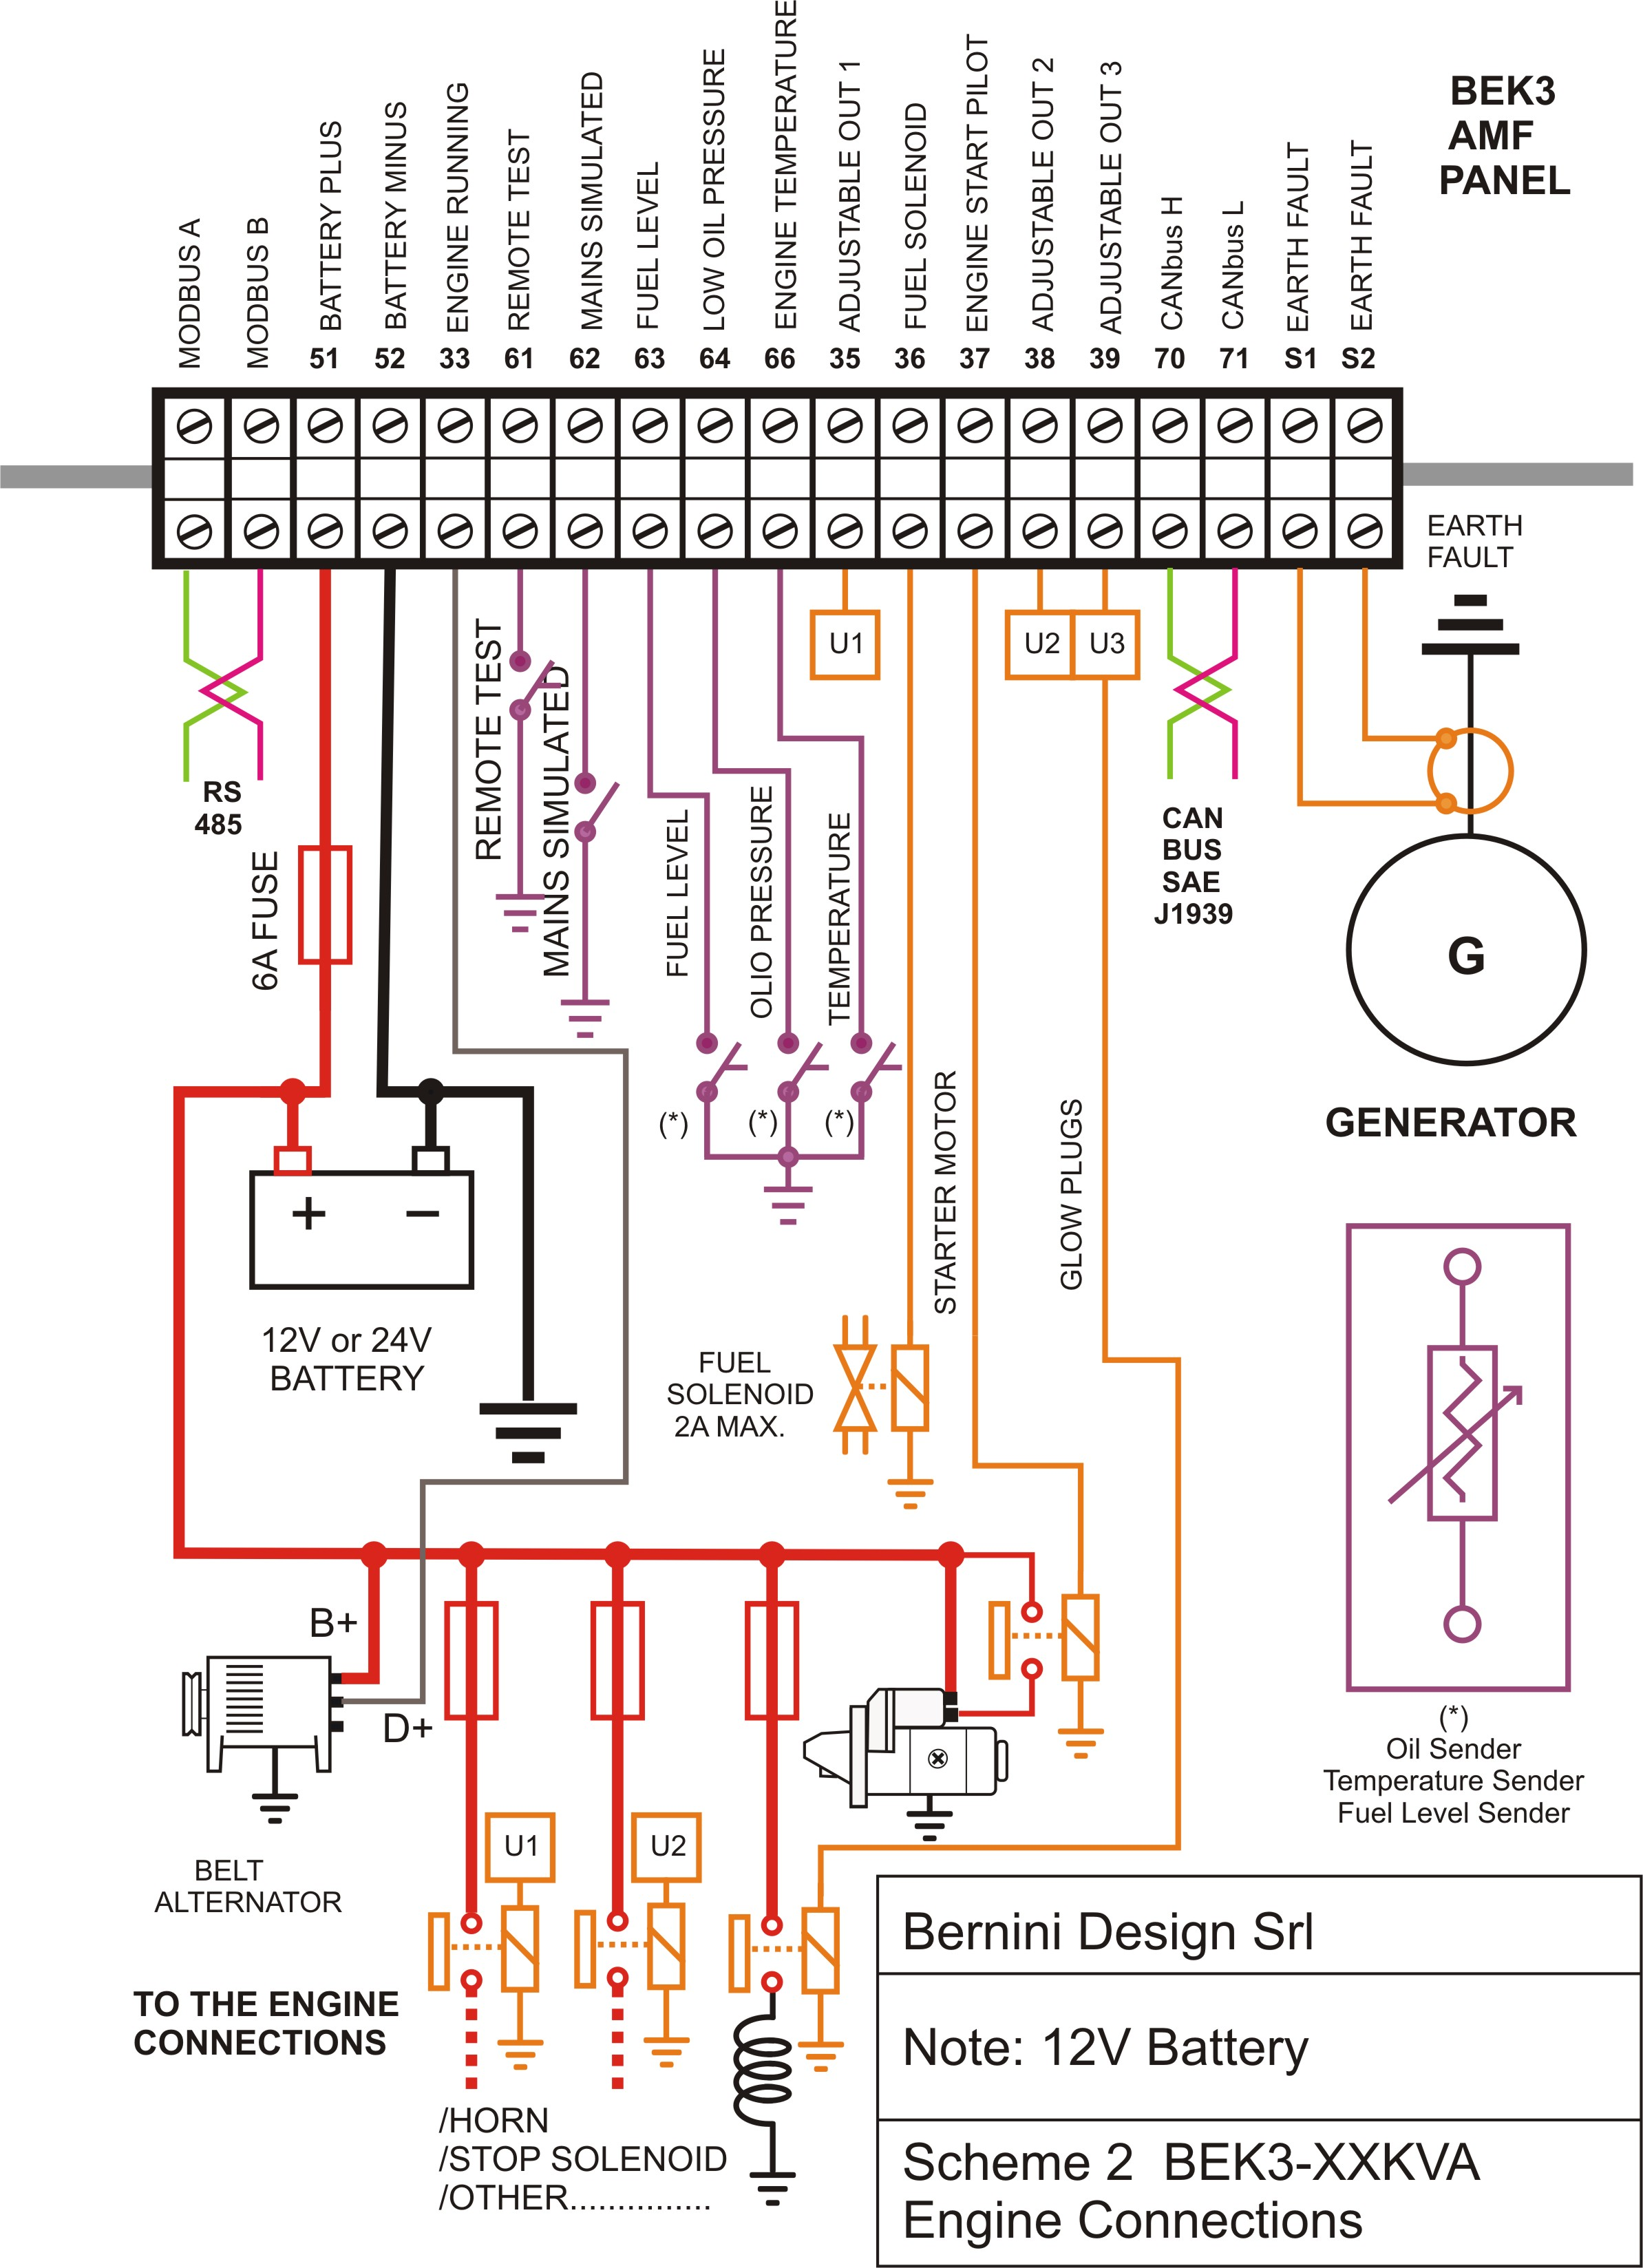 Diesel Generator Control Panel Wiring Diagram Engine Connections wiring diagram generator readingrat net wiring diagram for generators at gsmx.co